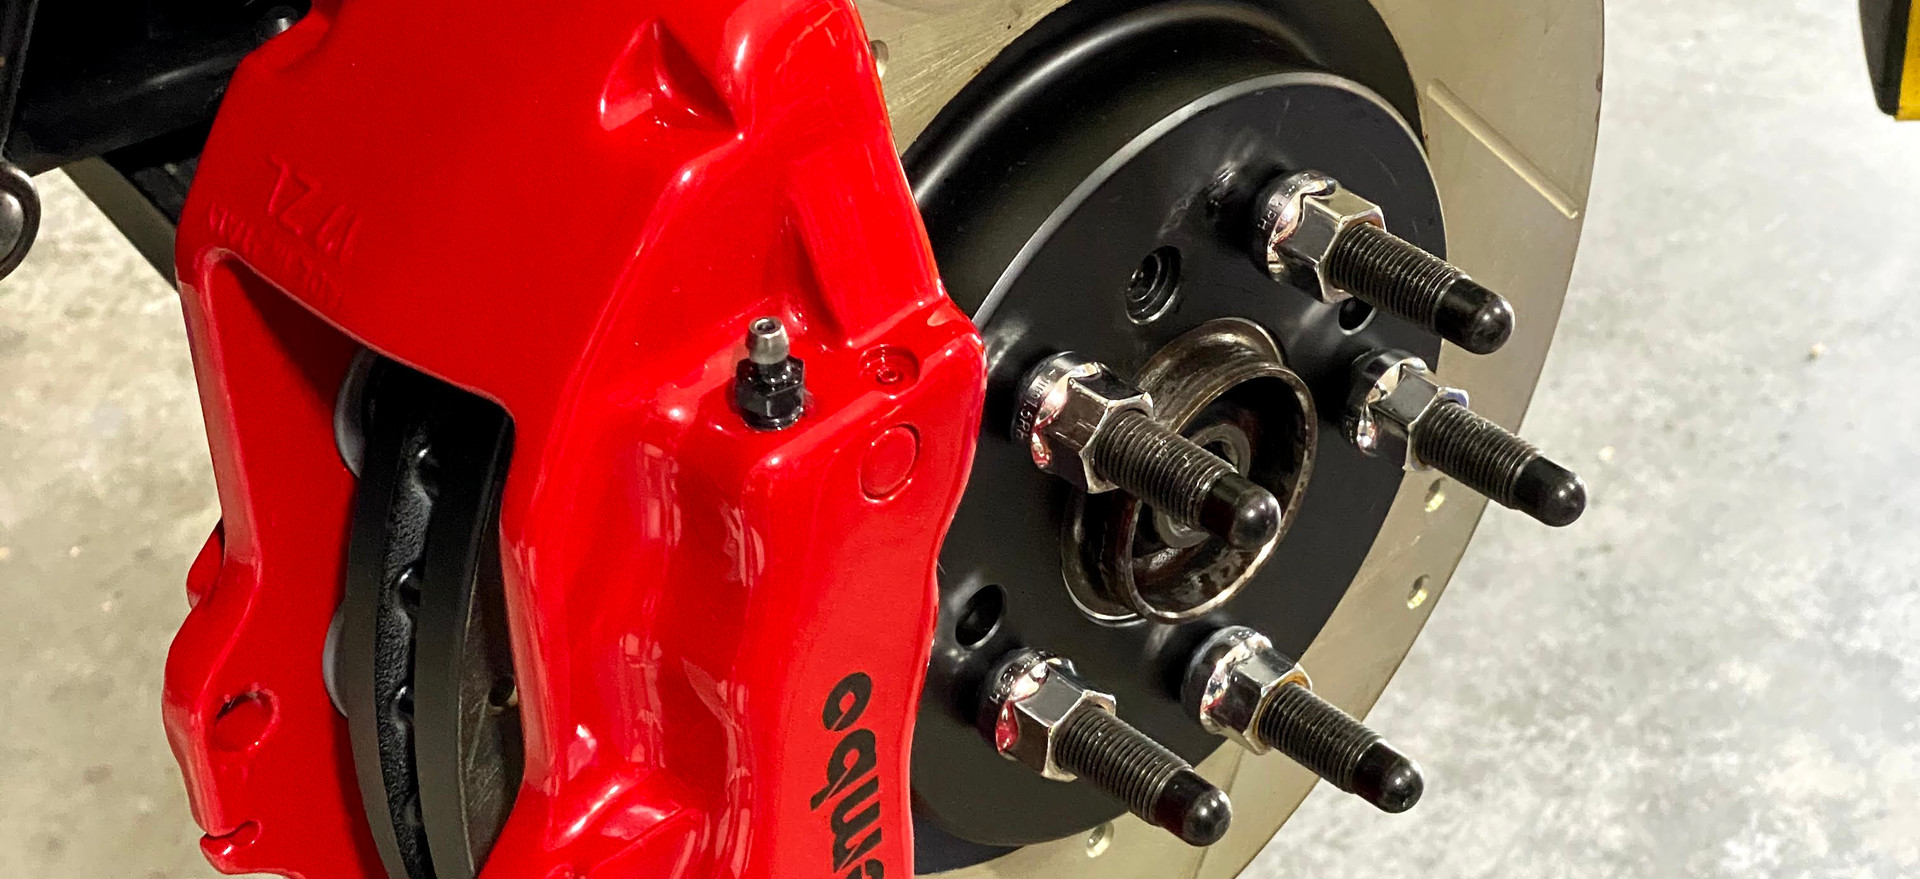 BREMBO 18Z Test-Fitting